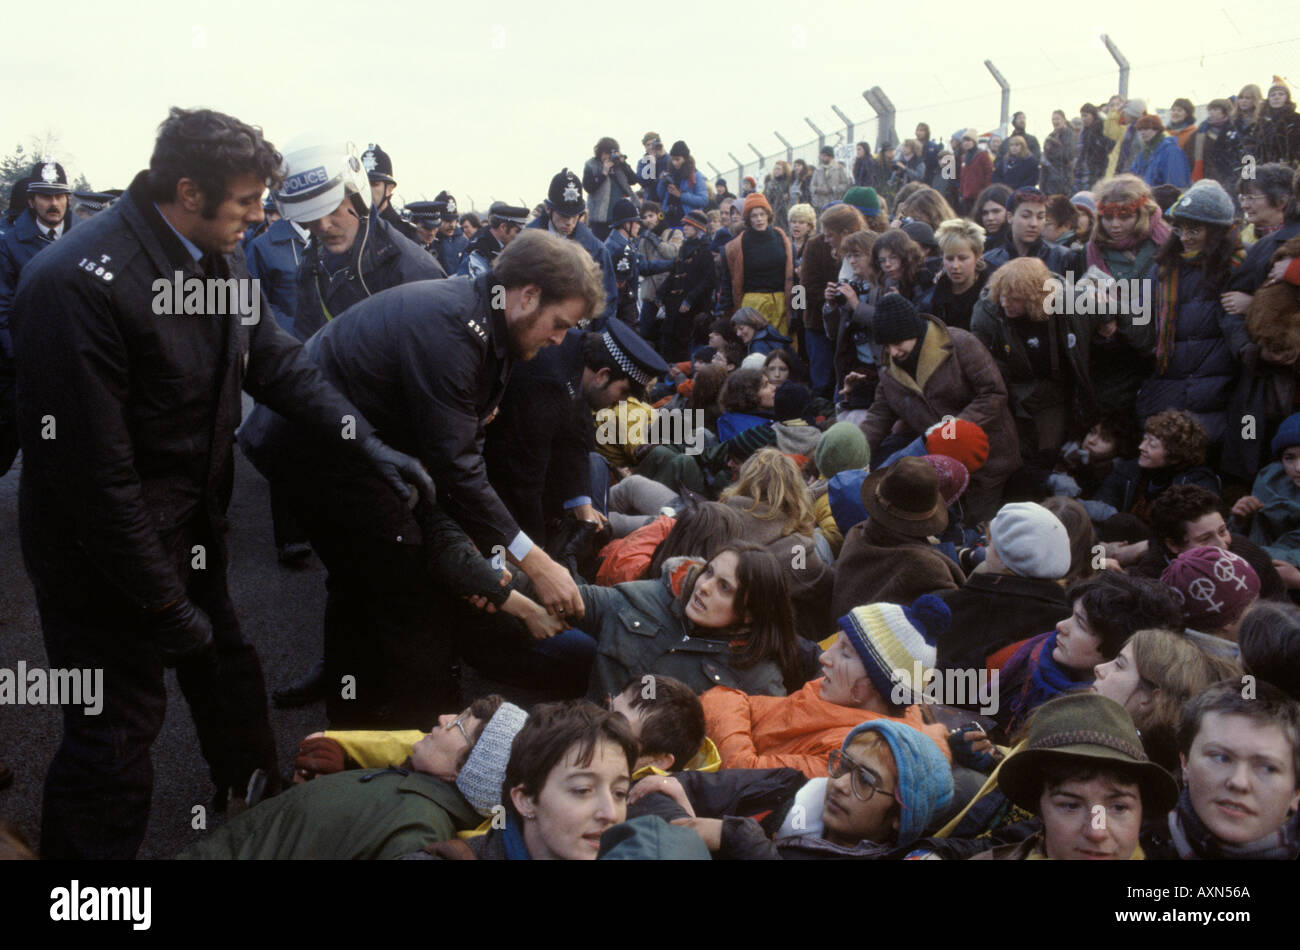 Polizei nimmt den Frieden protestierenden in nuklearen Marschflugkörpern Air Base Greenham Common Berkshire England Stockfoto